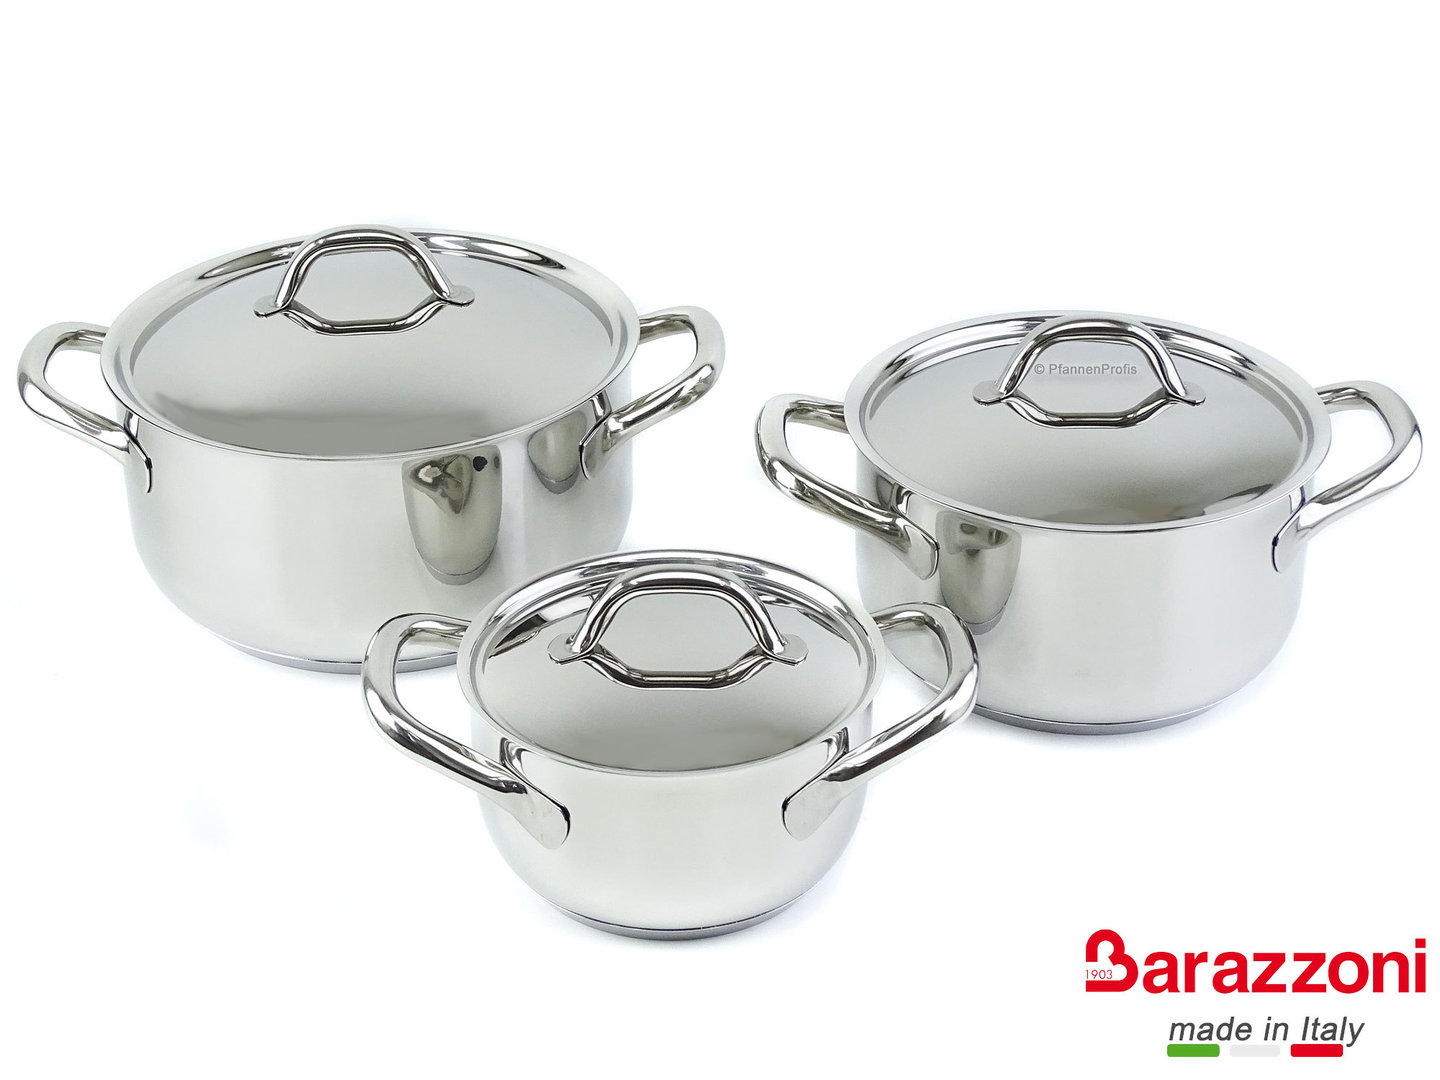 BARAZZONI starter set CHEF LINE 6 pieces stainless steel cookware set 16, 20, 24 cm